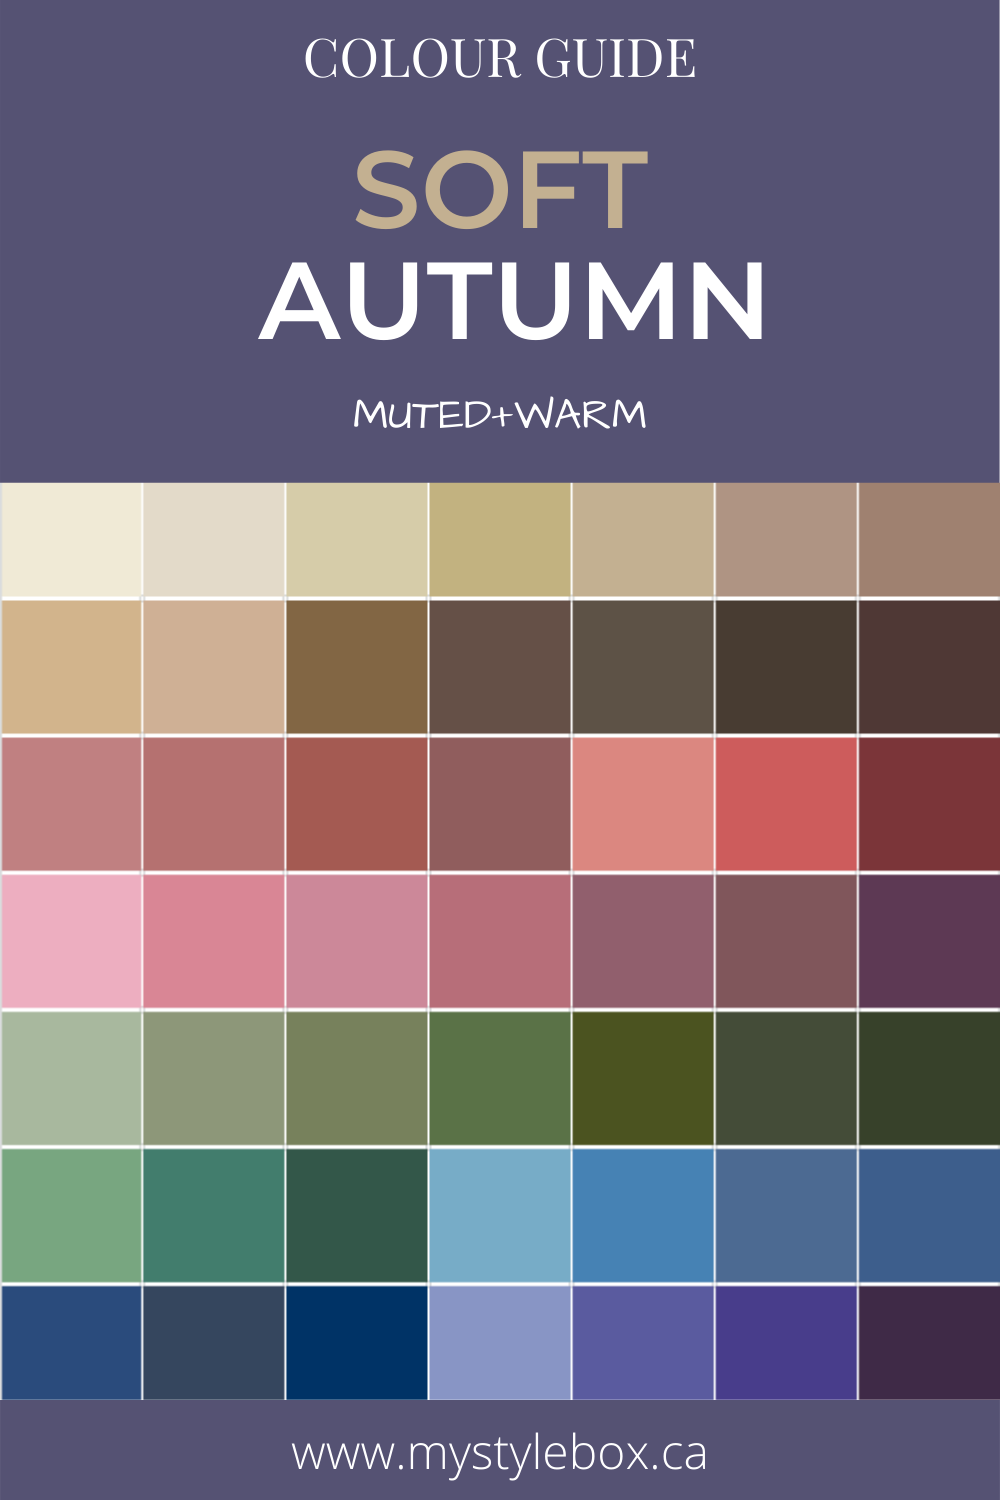 Soft Autumn Colour Guide